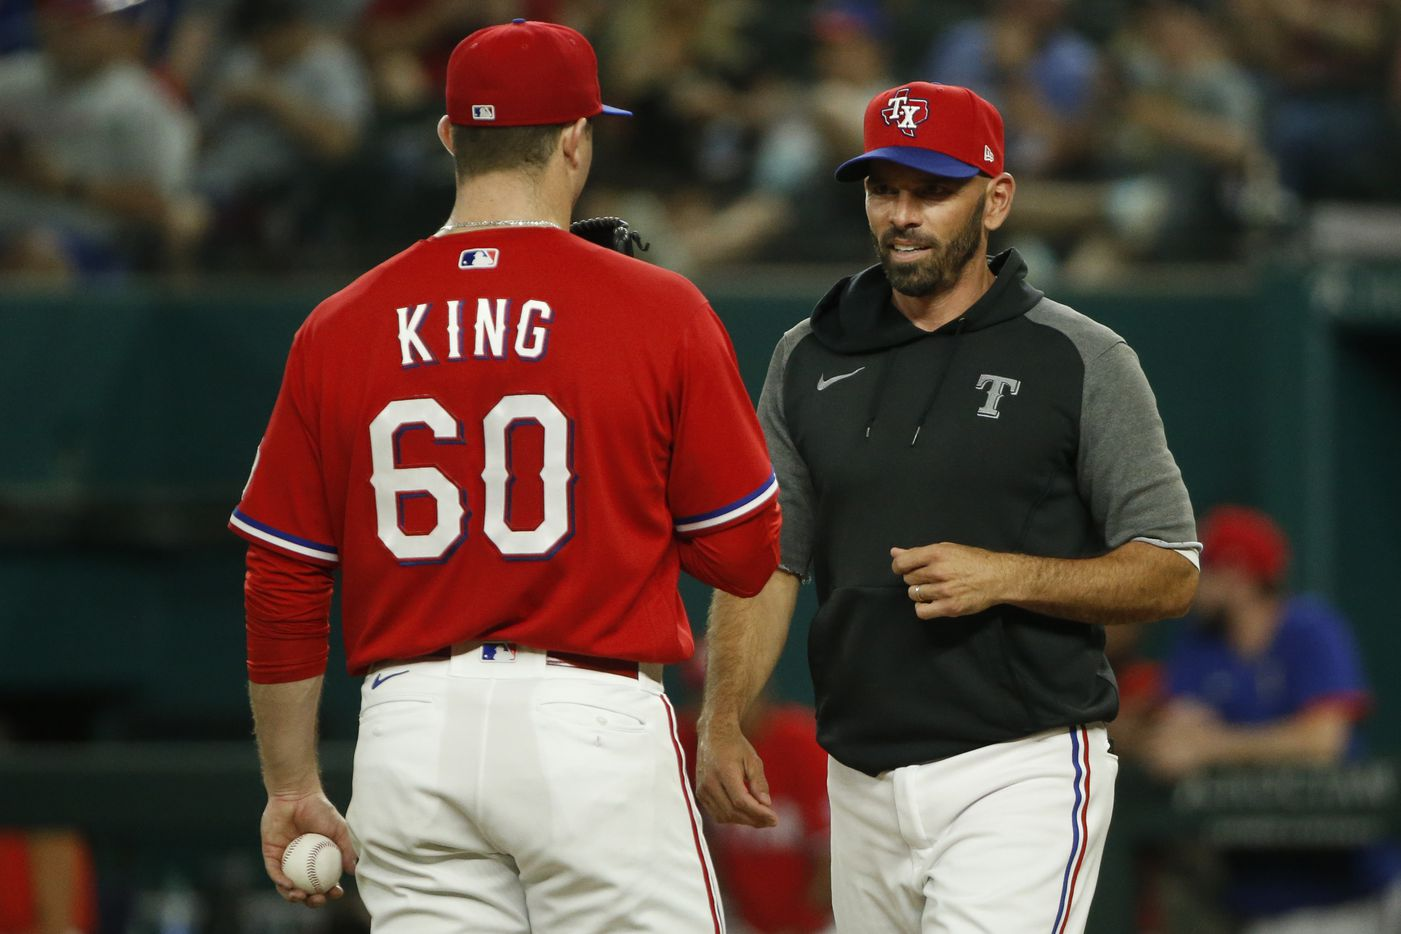 Texas Rangers relief pitcher John King (60) talks with Texas Rangers manager Chris Woodward (8) during a mound visit in the ninth inning against the Kansas City Royals at Globe Life Field on Friday, June 25, 2021, in Arlington. (Elias Valverde II/The Dallas Morning News)